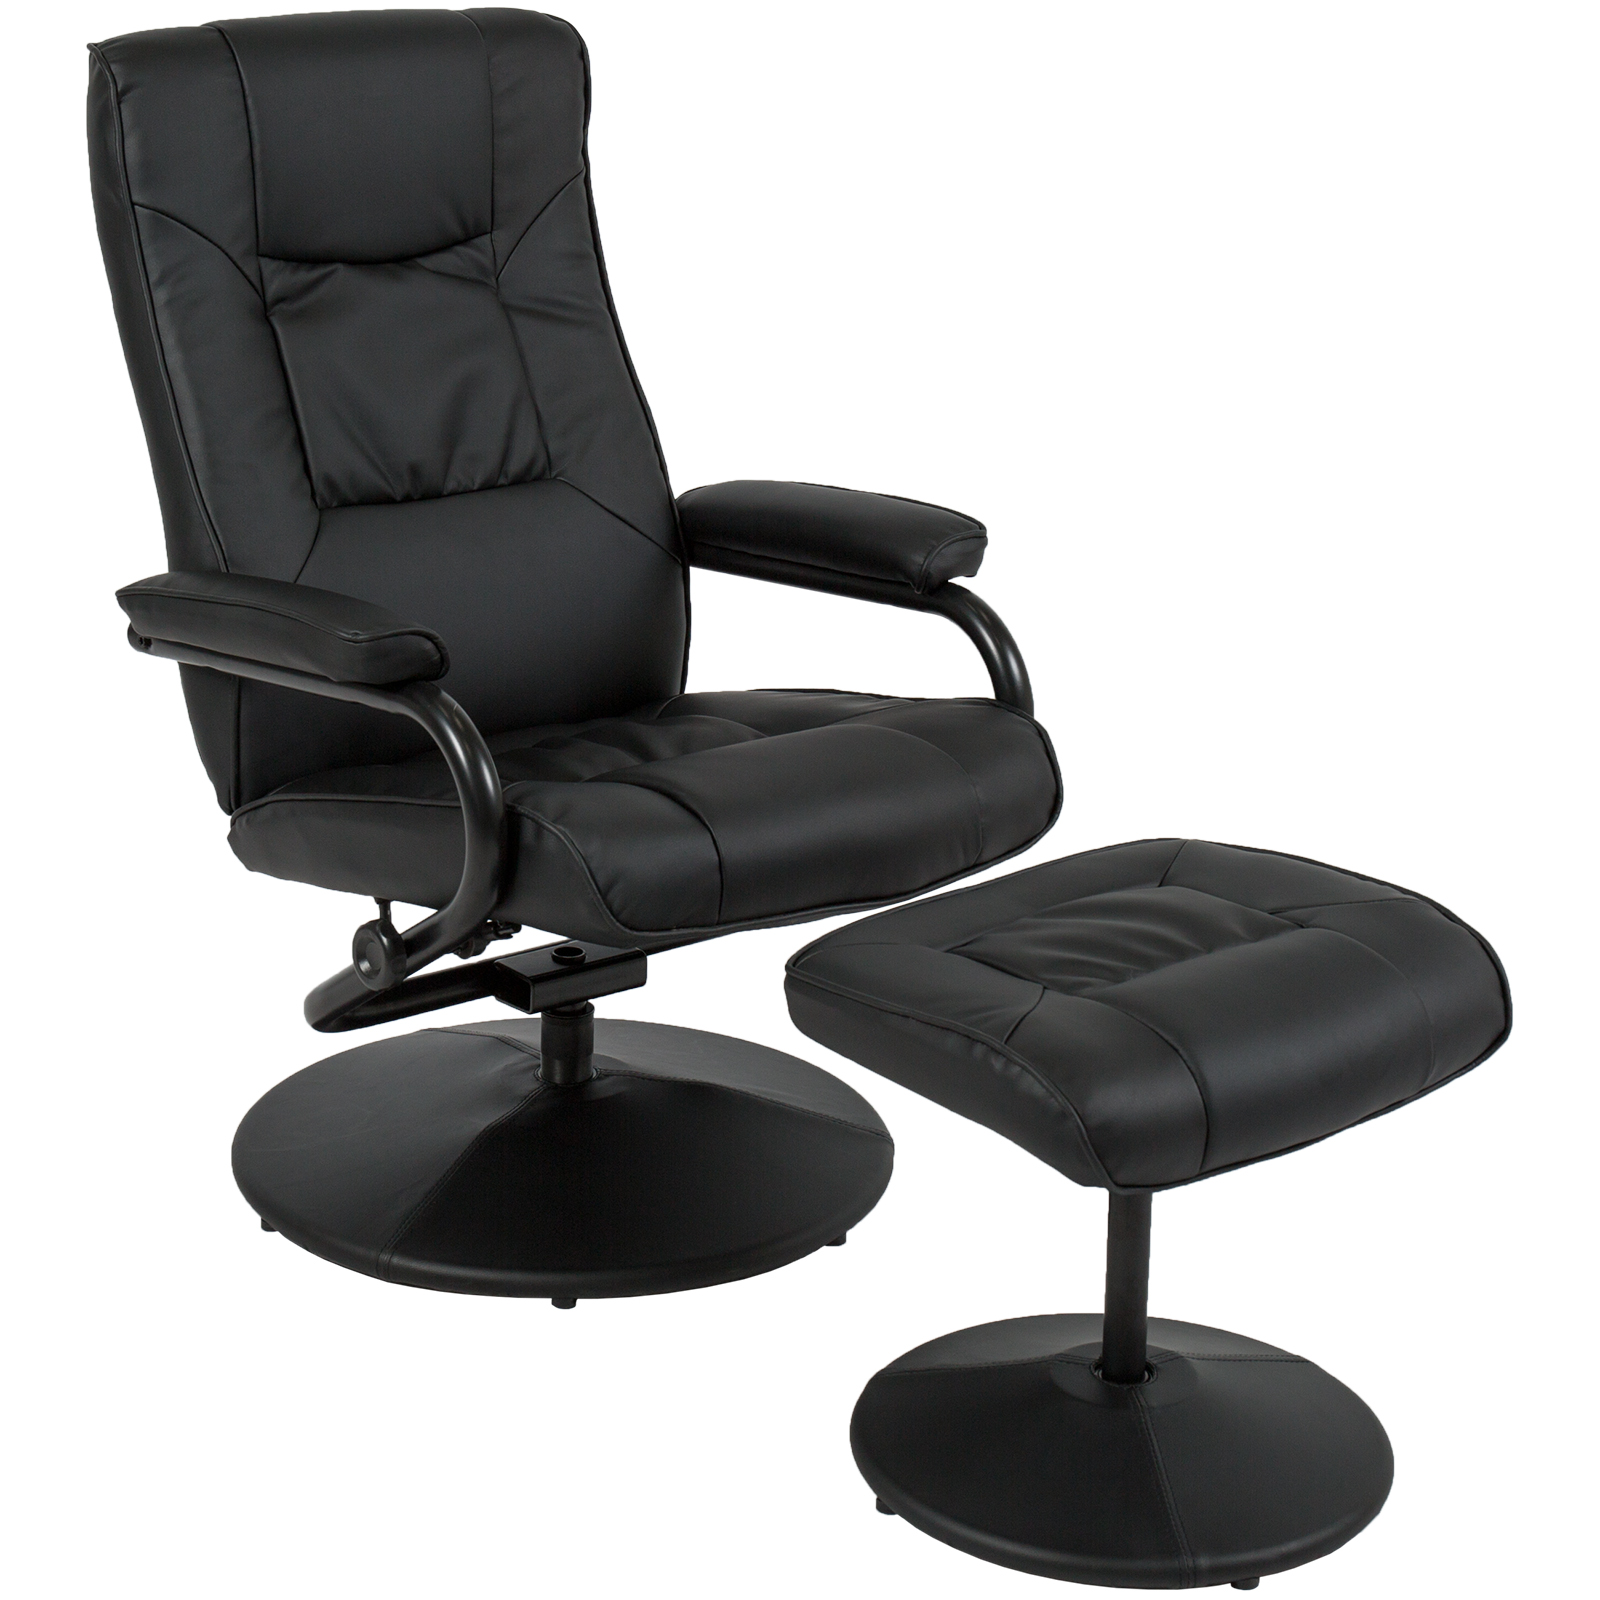 Best Choice Products Leather Swivel Recliner Lounge Chair w/ Padded Armrests and Ottoman Stool for Home, Office, Gaming - Black